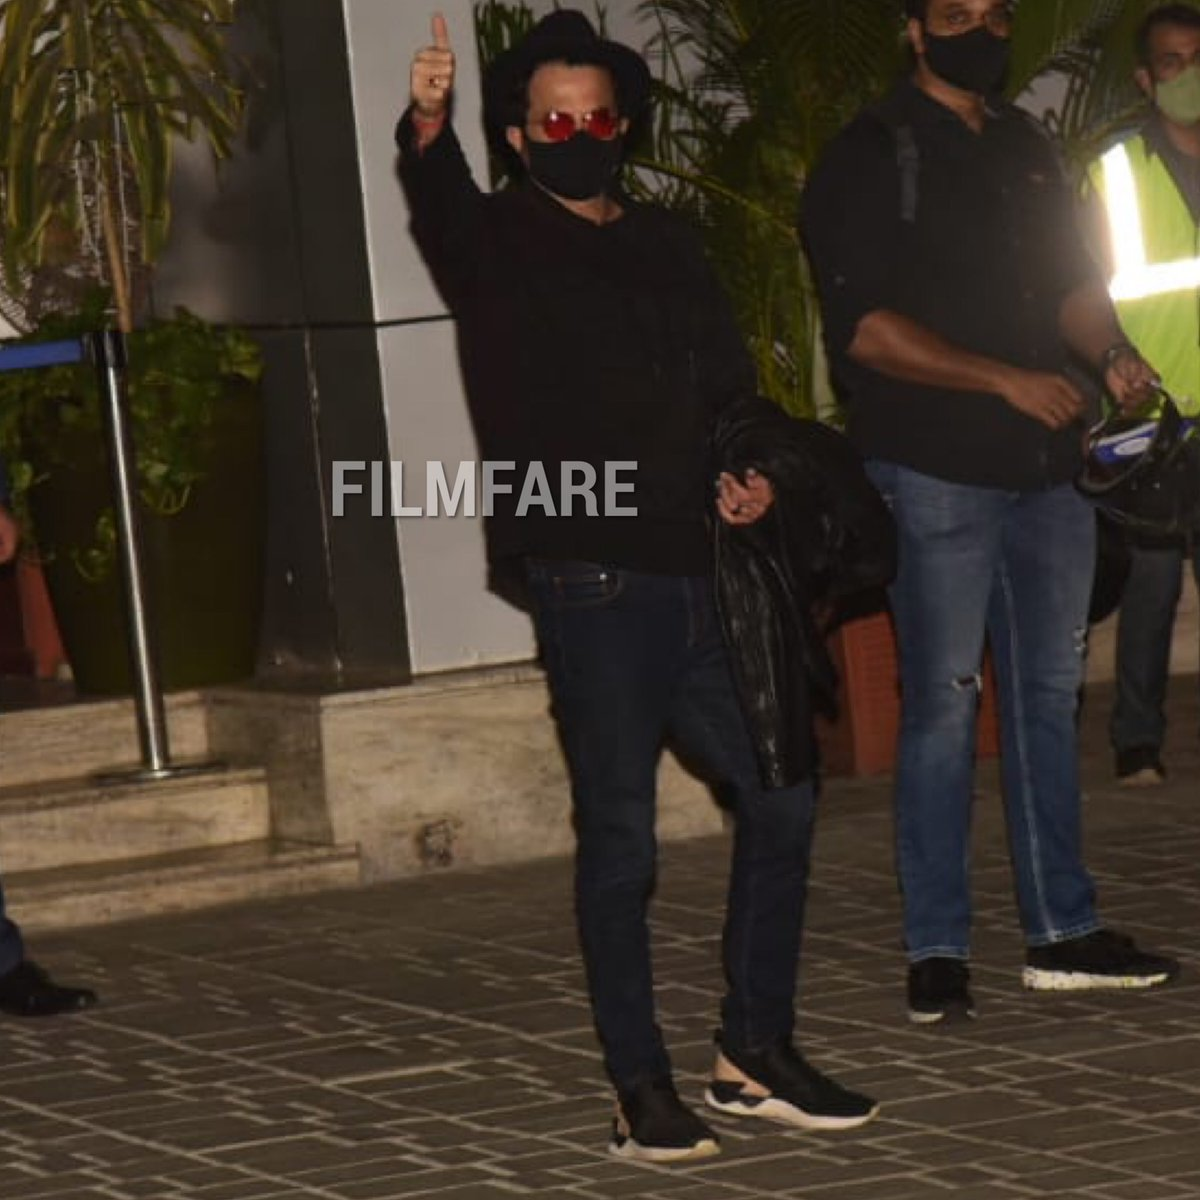 #AnilKapoor returns to Mumbai after members of the cast of #JugJuggJeeyo tested positive for COVID-19 and the shooting has now been halted.